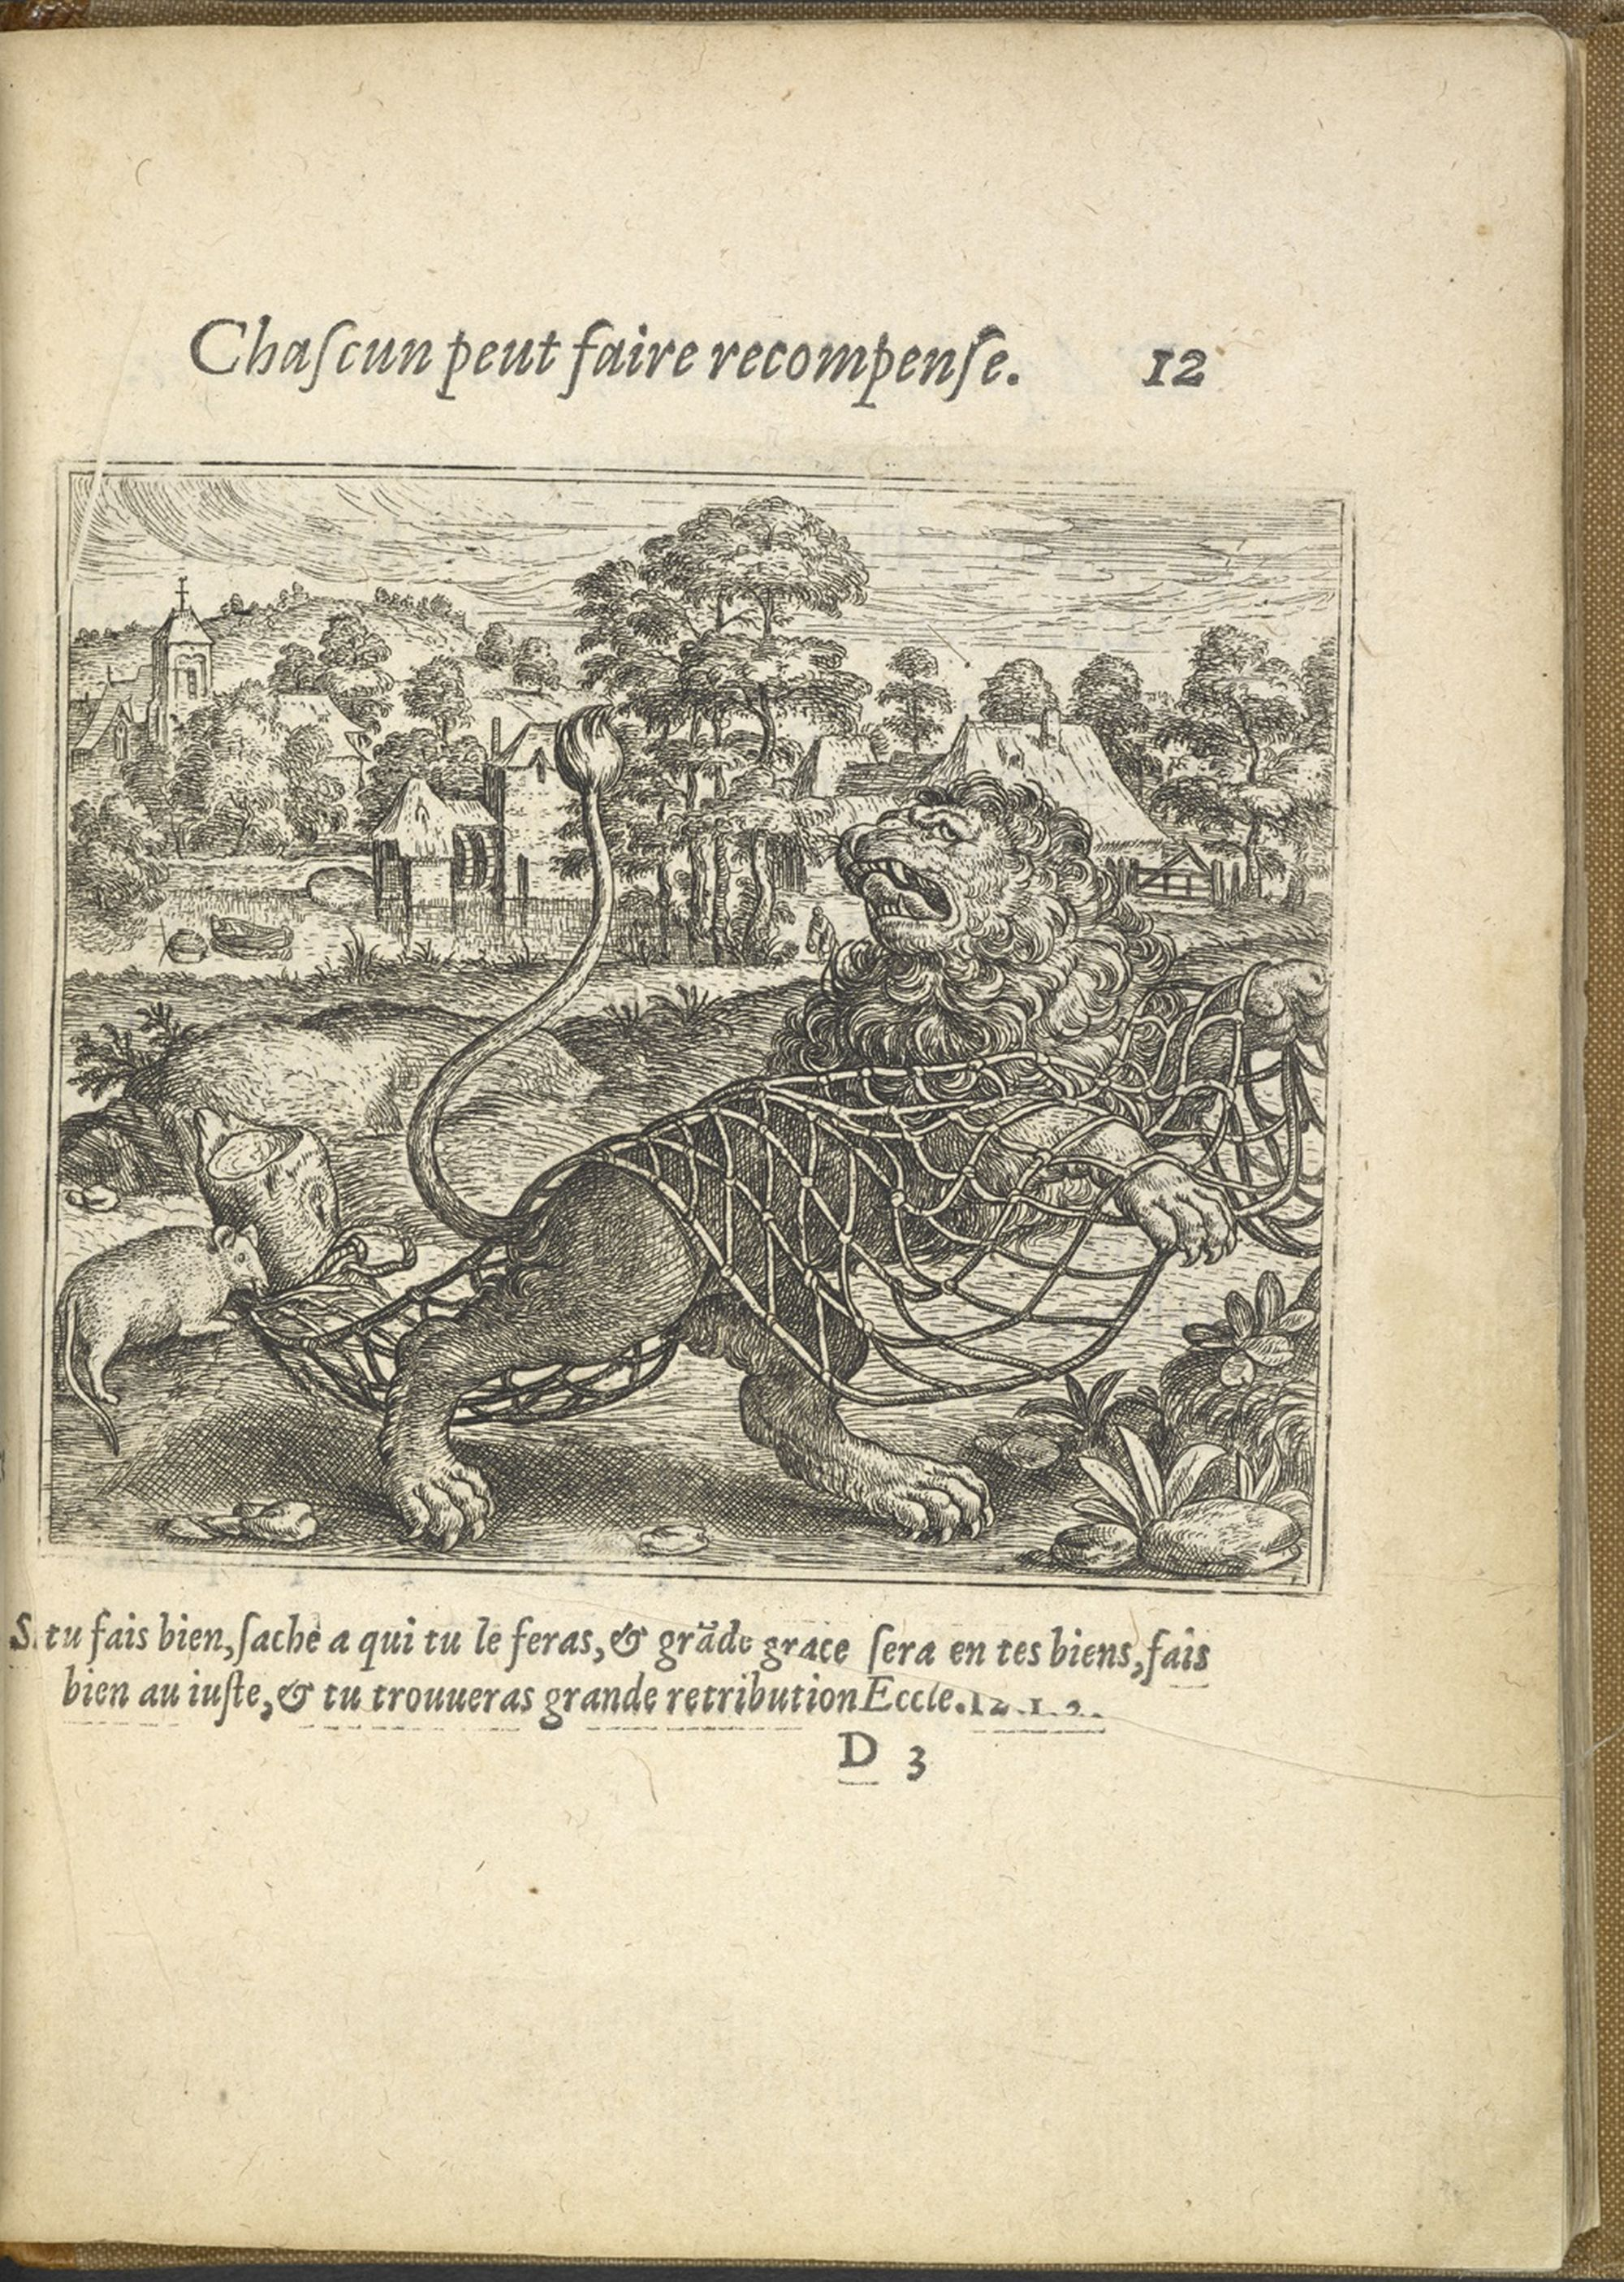 Illustration from Aesop's Fables, Esbatement moral des animaux, Anvers 1578 edition.